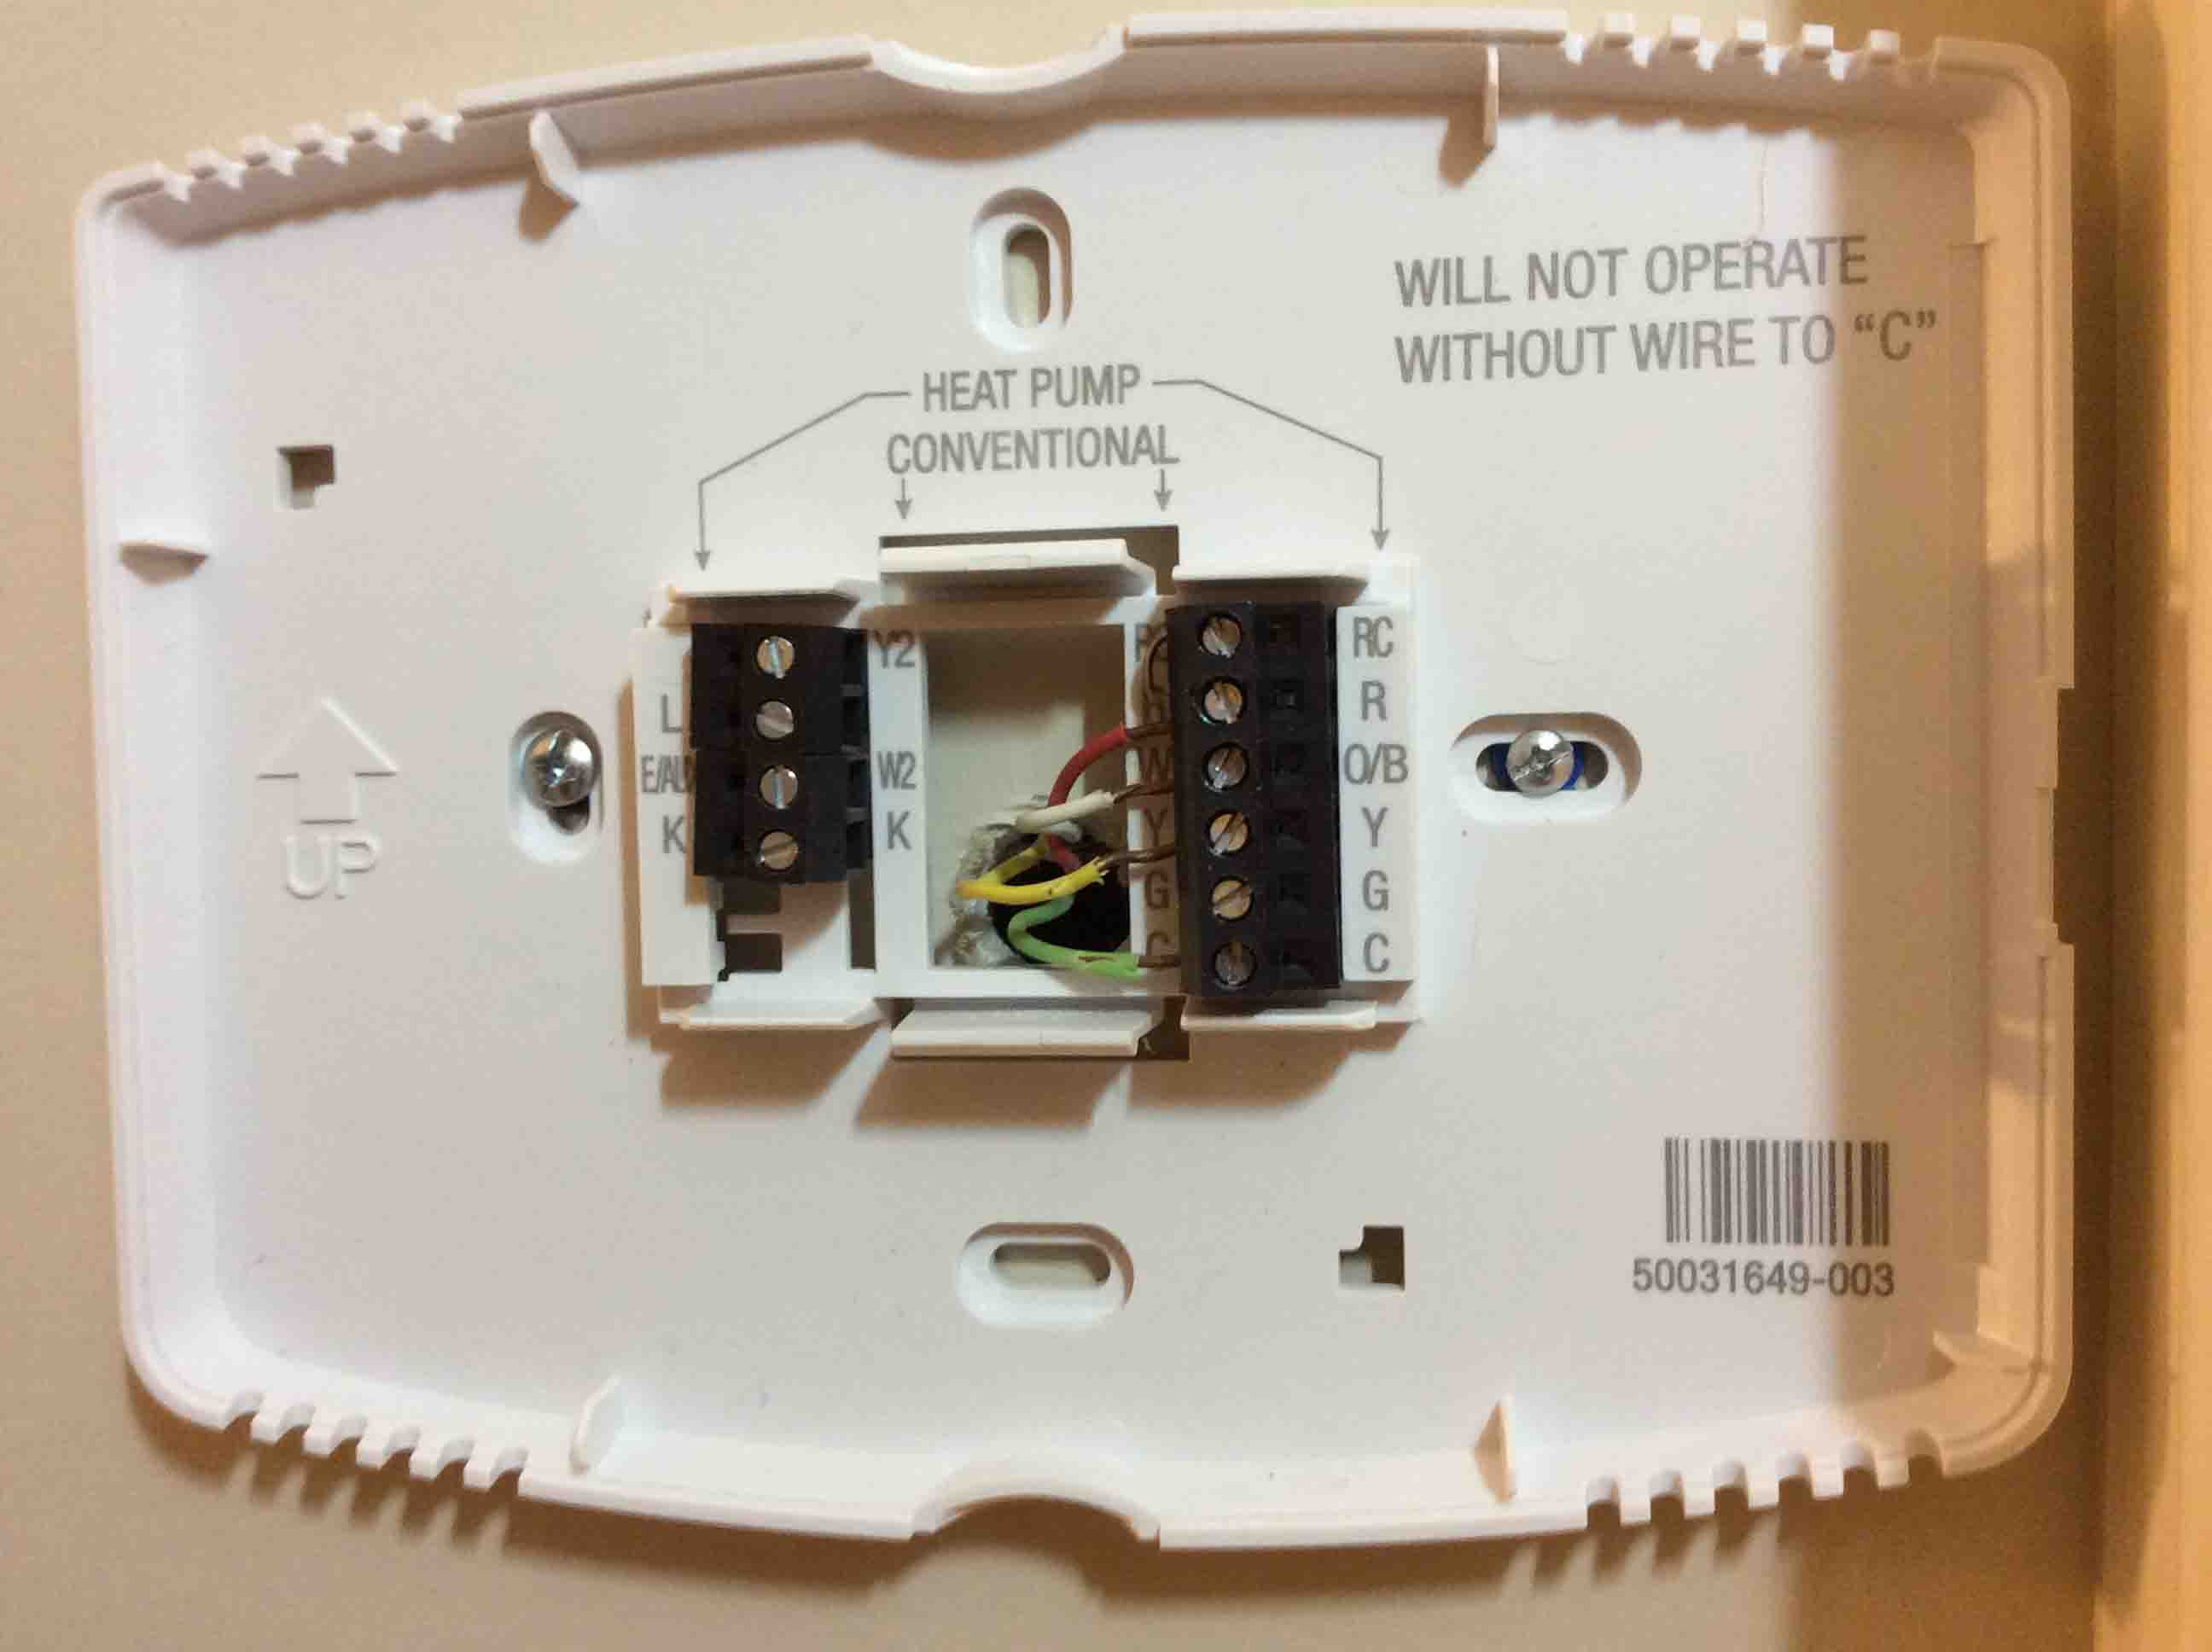 HoneywellWiFiThermostatWallPlateTypicalWiring_001 honeywell smart thermostat wiring instructions rth9580wf tom's wiring diagram for honeywell rth6580wf at reclaimingppi.co